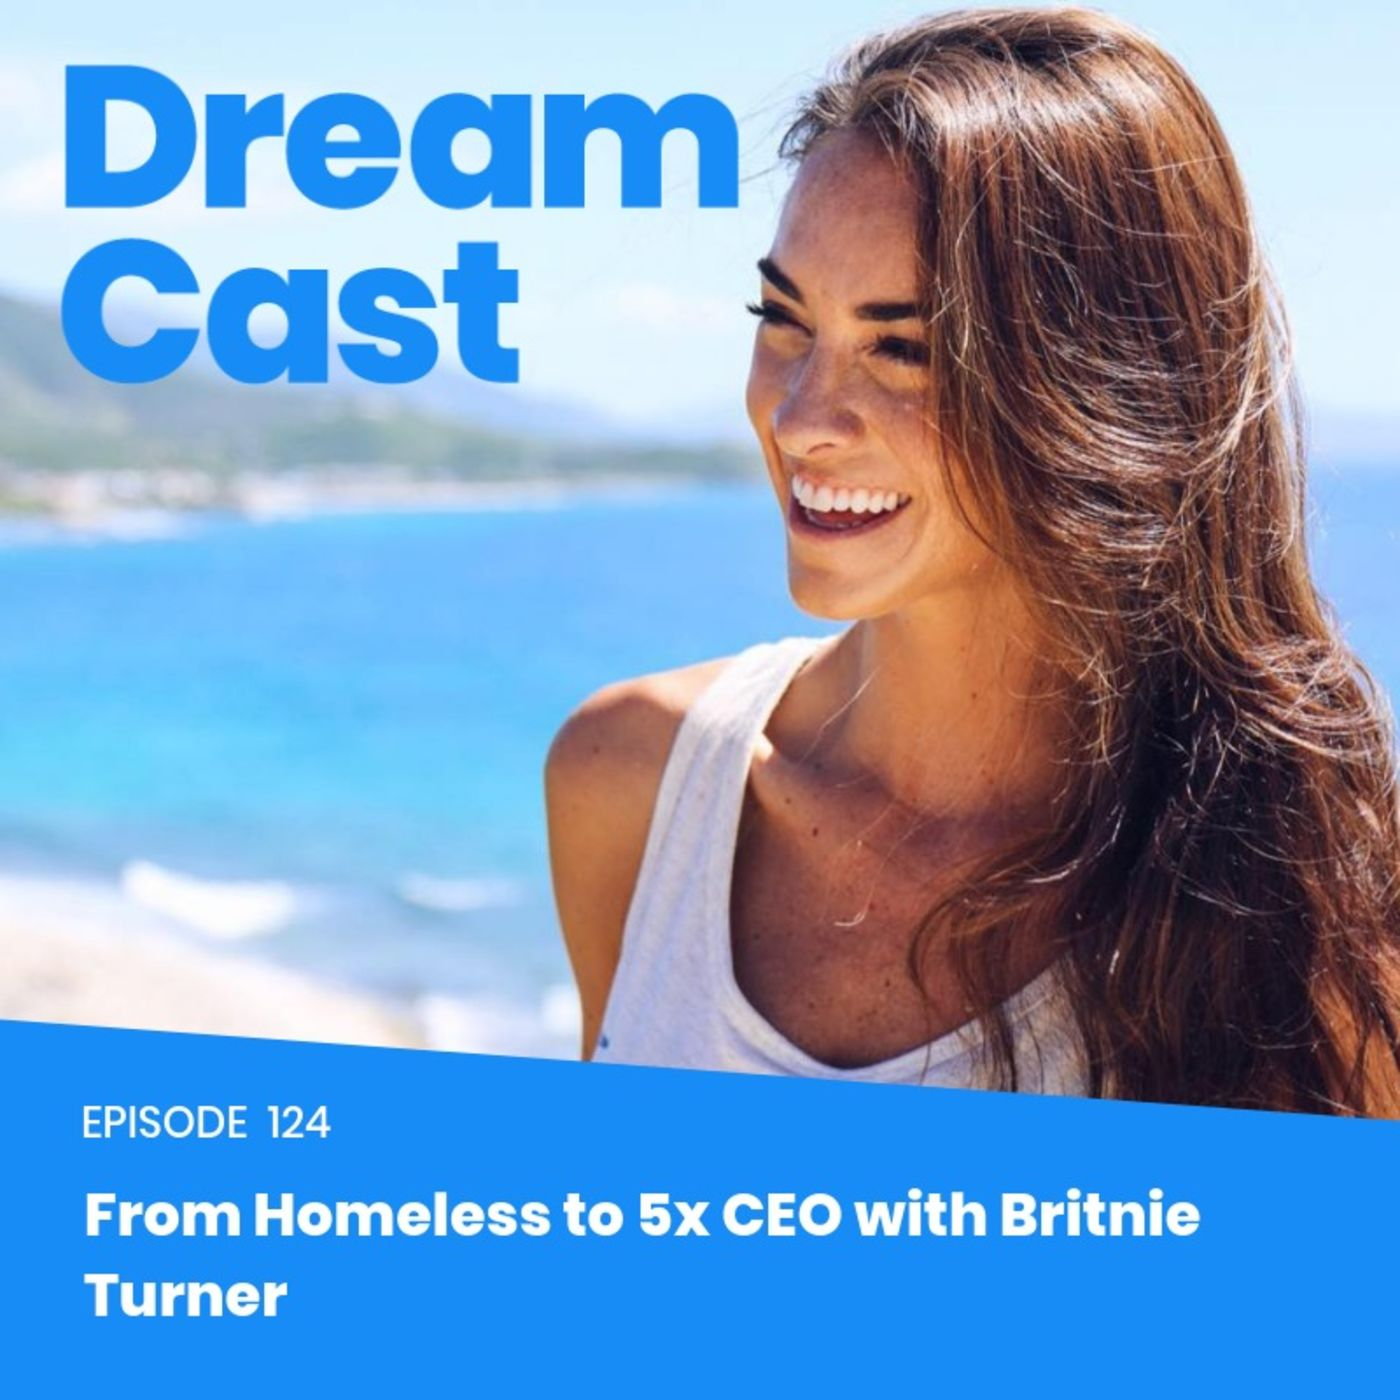 Episode 124 - From Homeless to 5x CEO with Britnie Turner